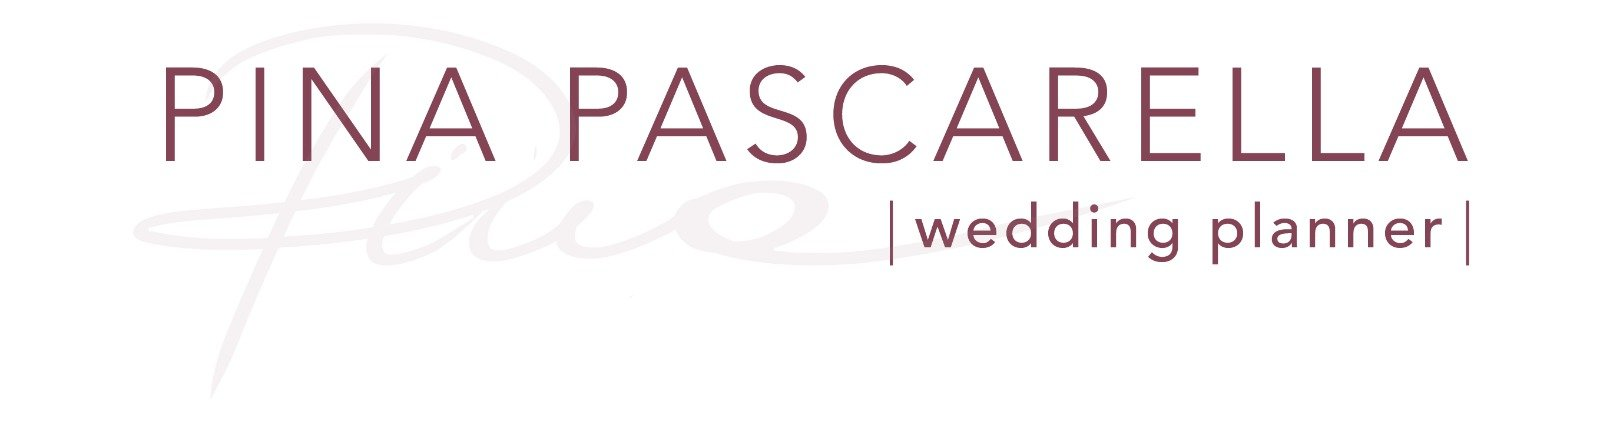 Pina Pascarella | Wedding Planner